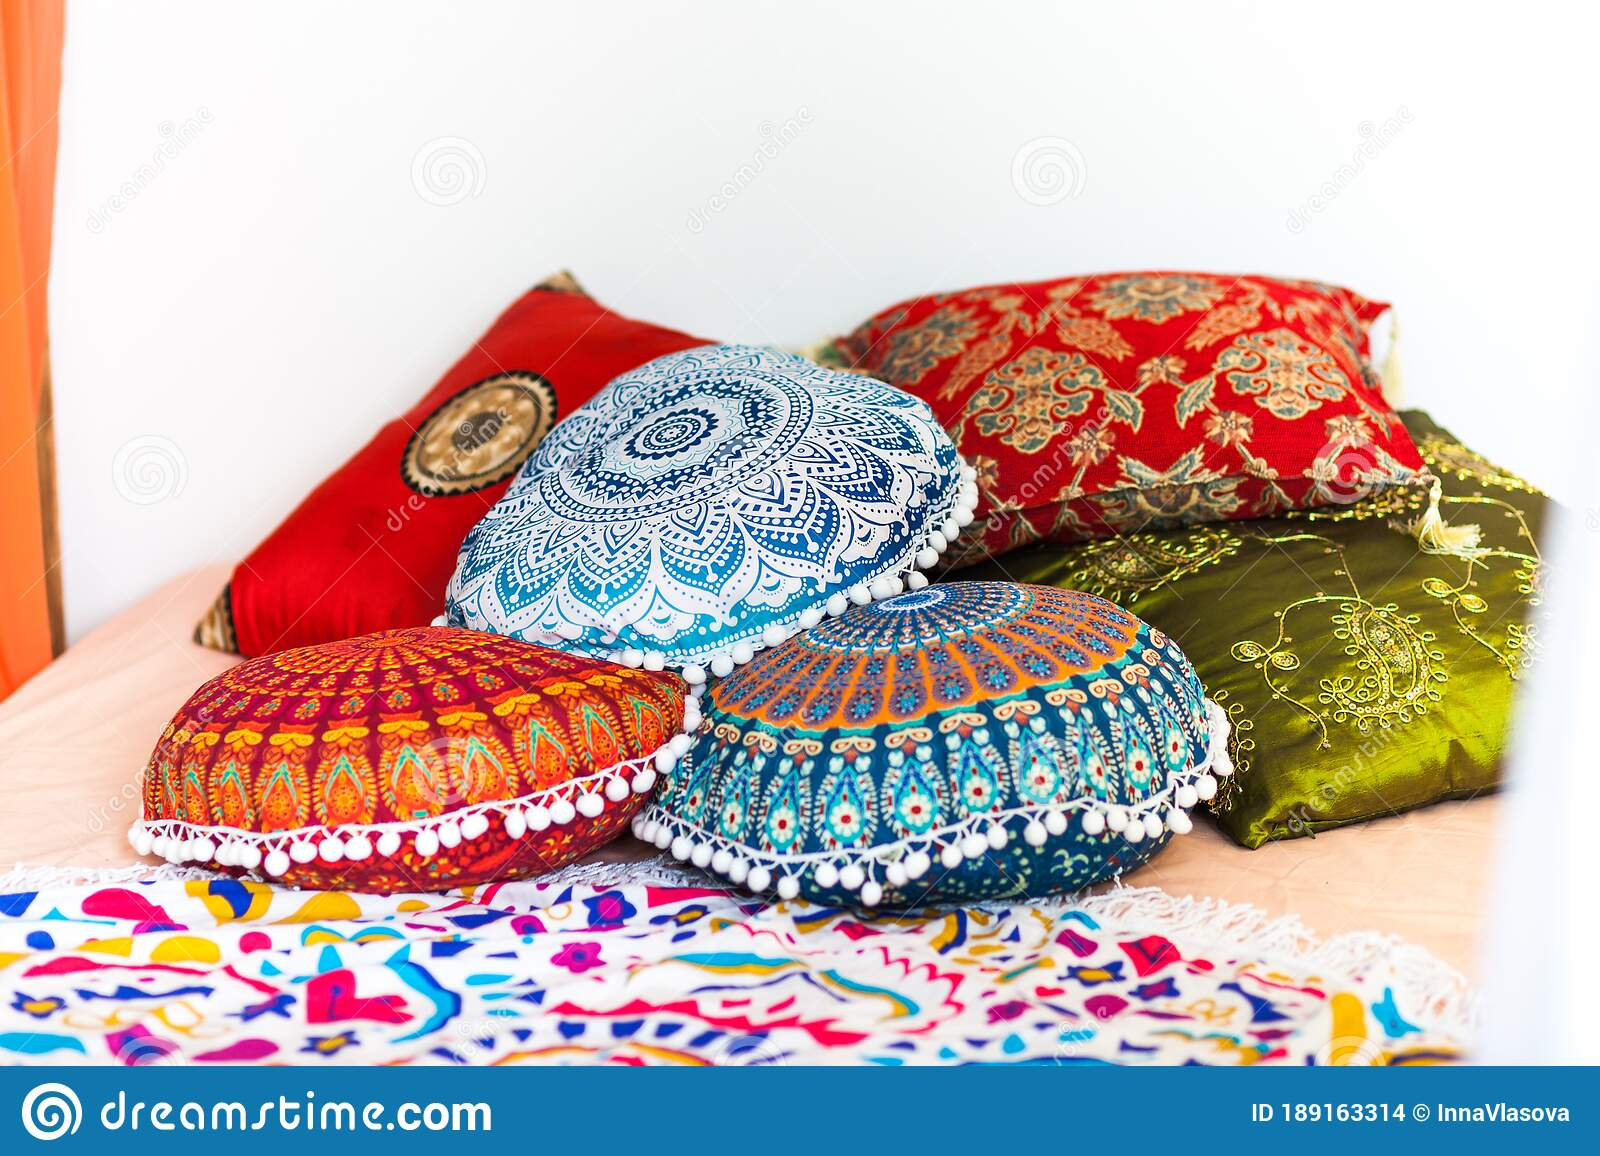 Marrakech Bedroom In Bright Colors With Home Plants Stock Photo Image Of Pillow Interior 189163314